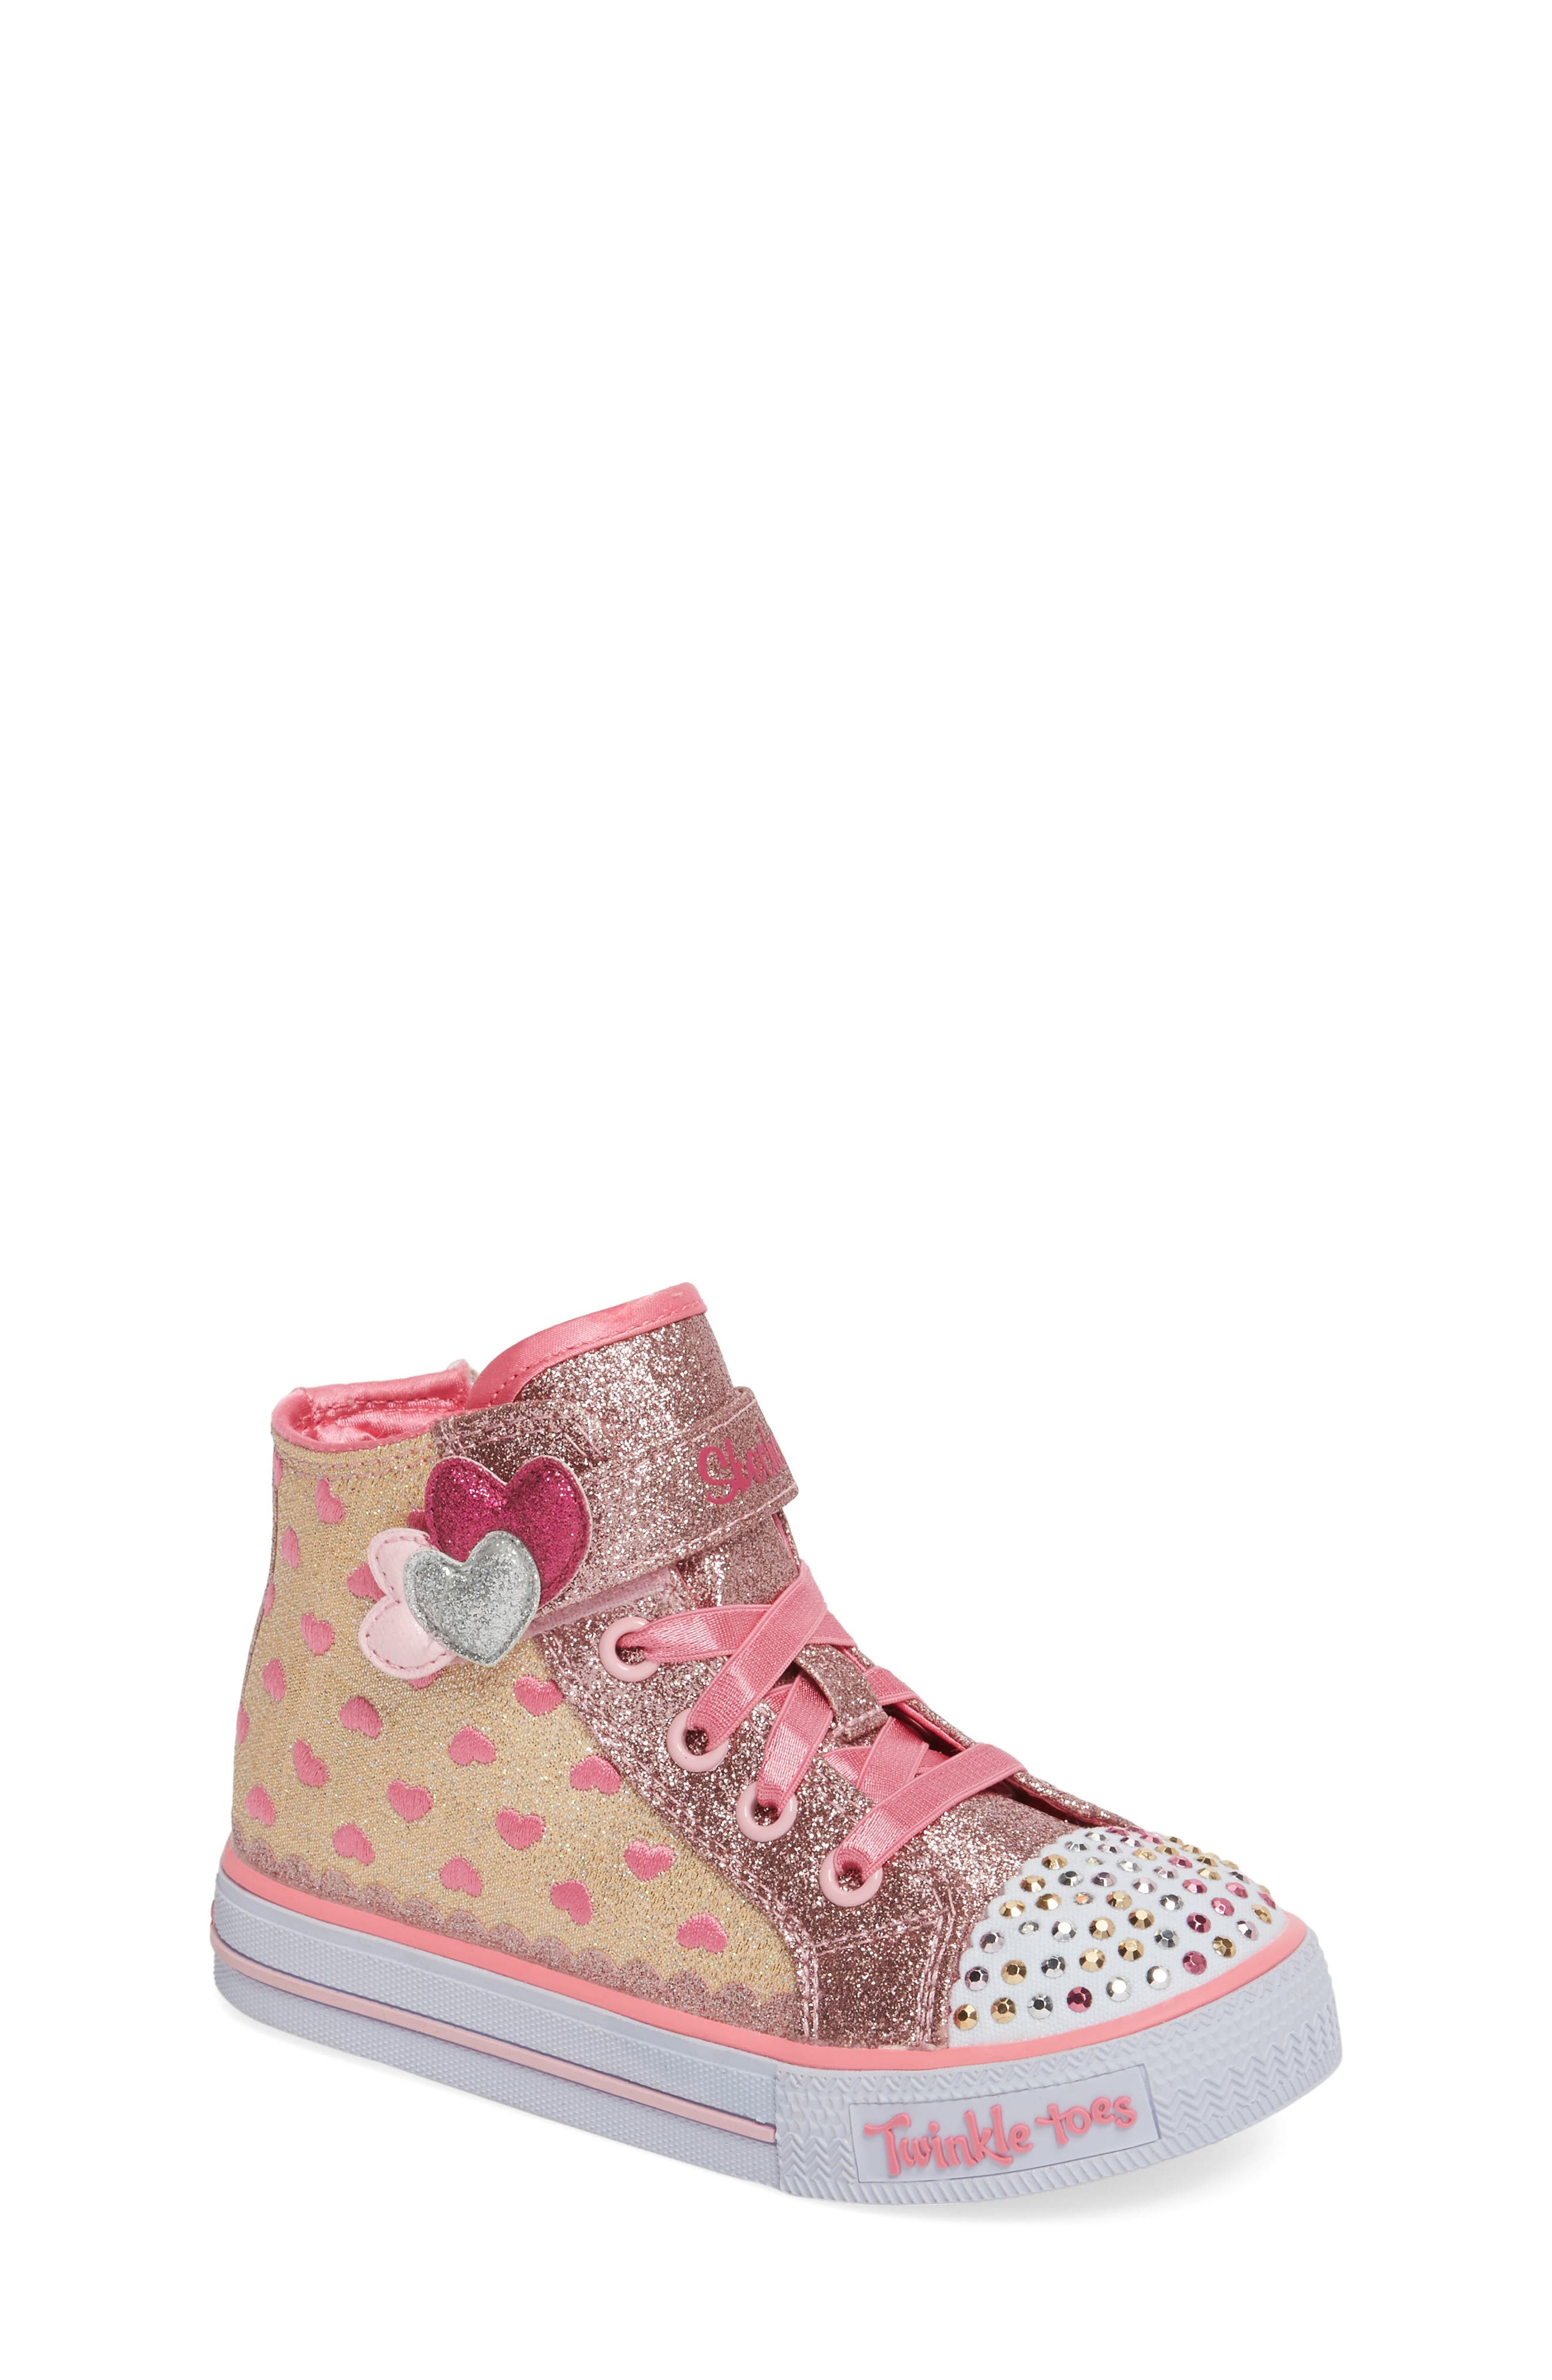 Twinkle Toes - Shuffles High Top Sneaker,                             Main thumbnail 1, color,                             225